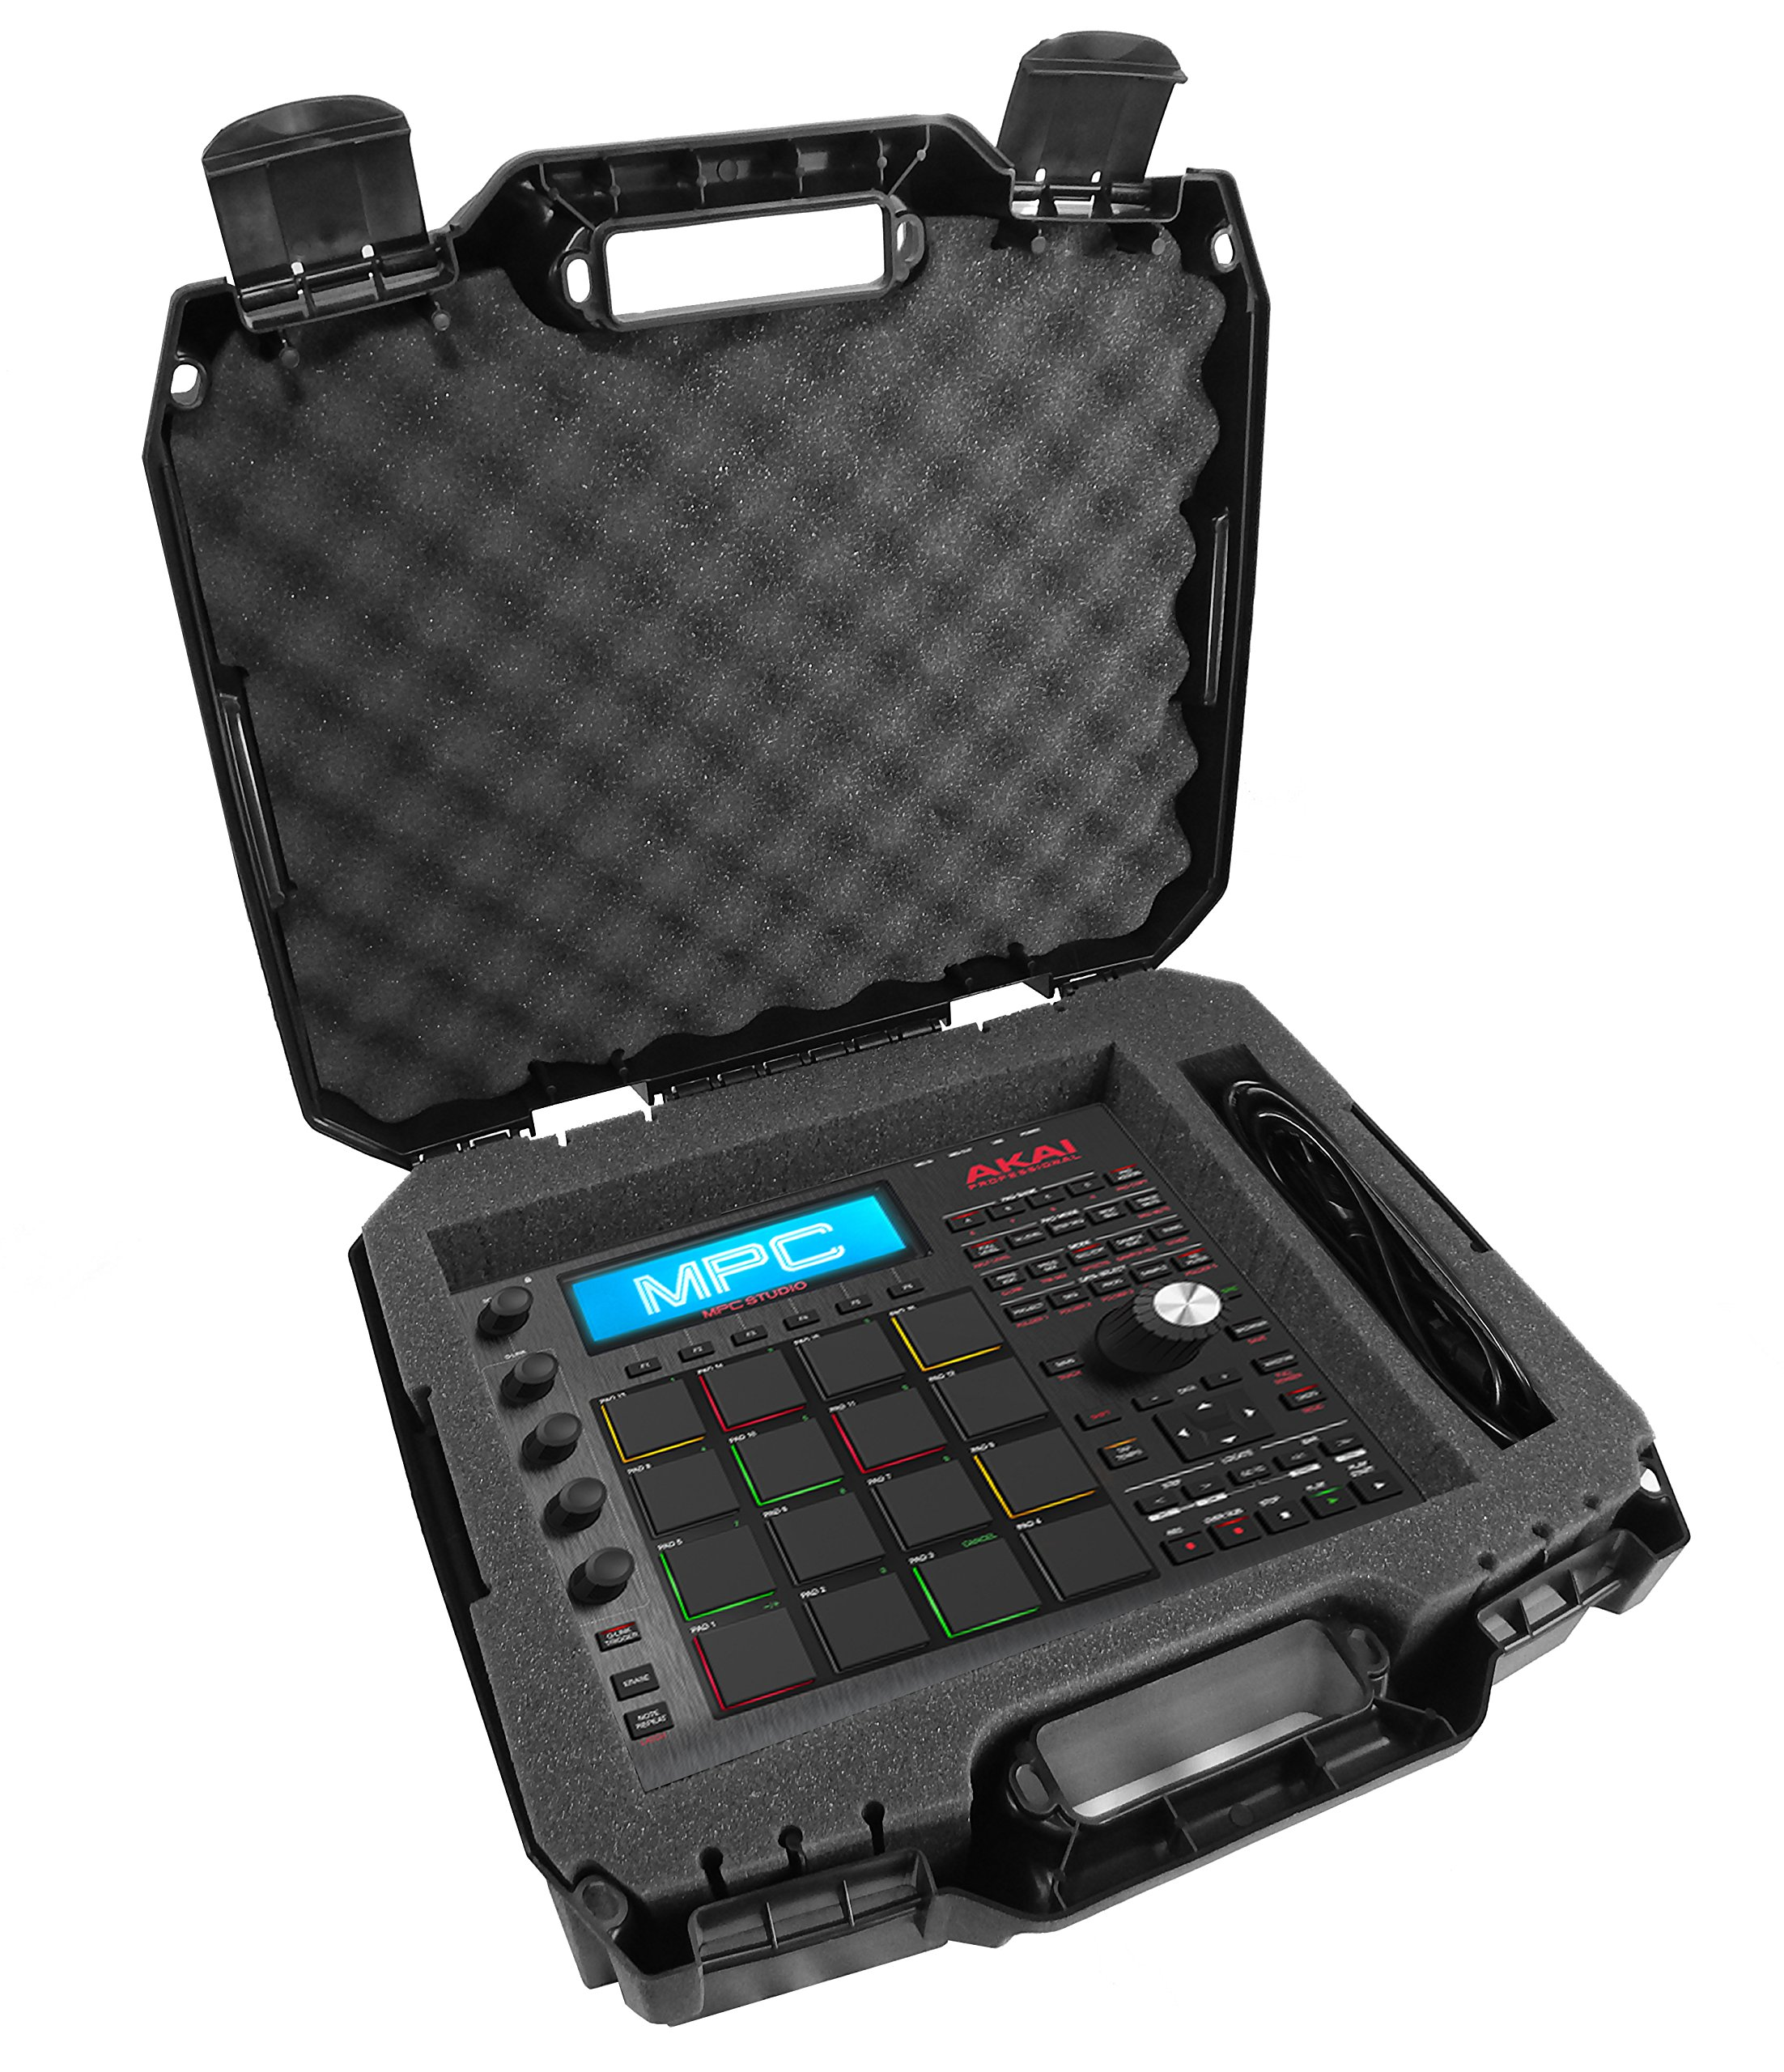 Casematix ArmorXL 17 inch Carry Case Compatible with KeyPad Drum Controllers by Akai Professional Mpd218, Apc Mini, Mpx16, Mpd18, Mpc Studio Black, MPpc Element, MidiMix Tom Cat or Rhythm Wolf by CASEMATIX